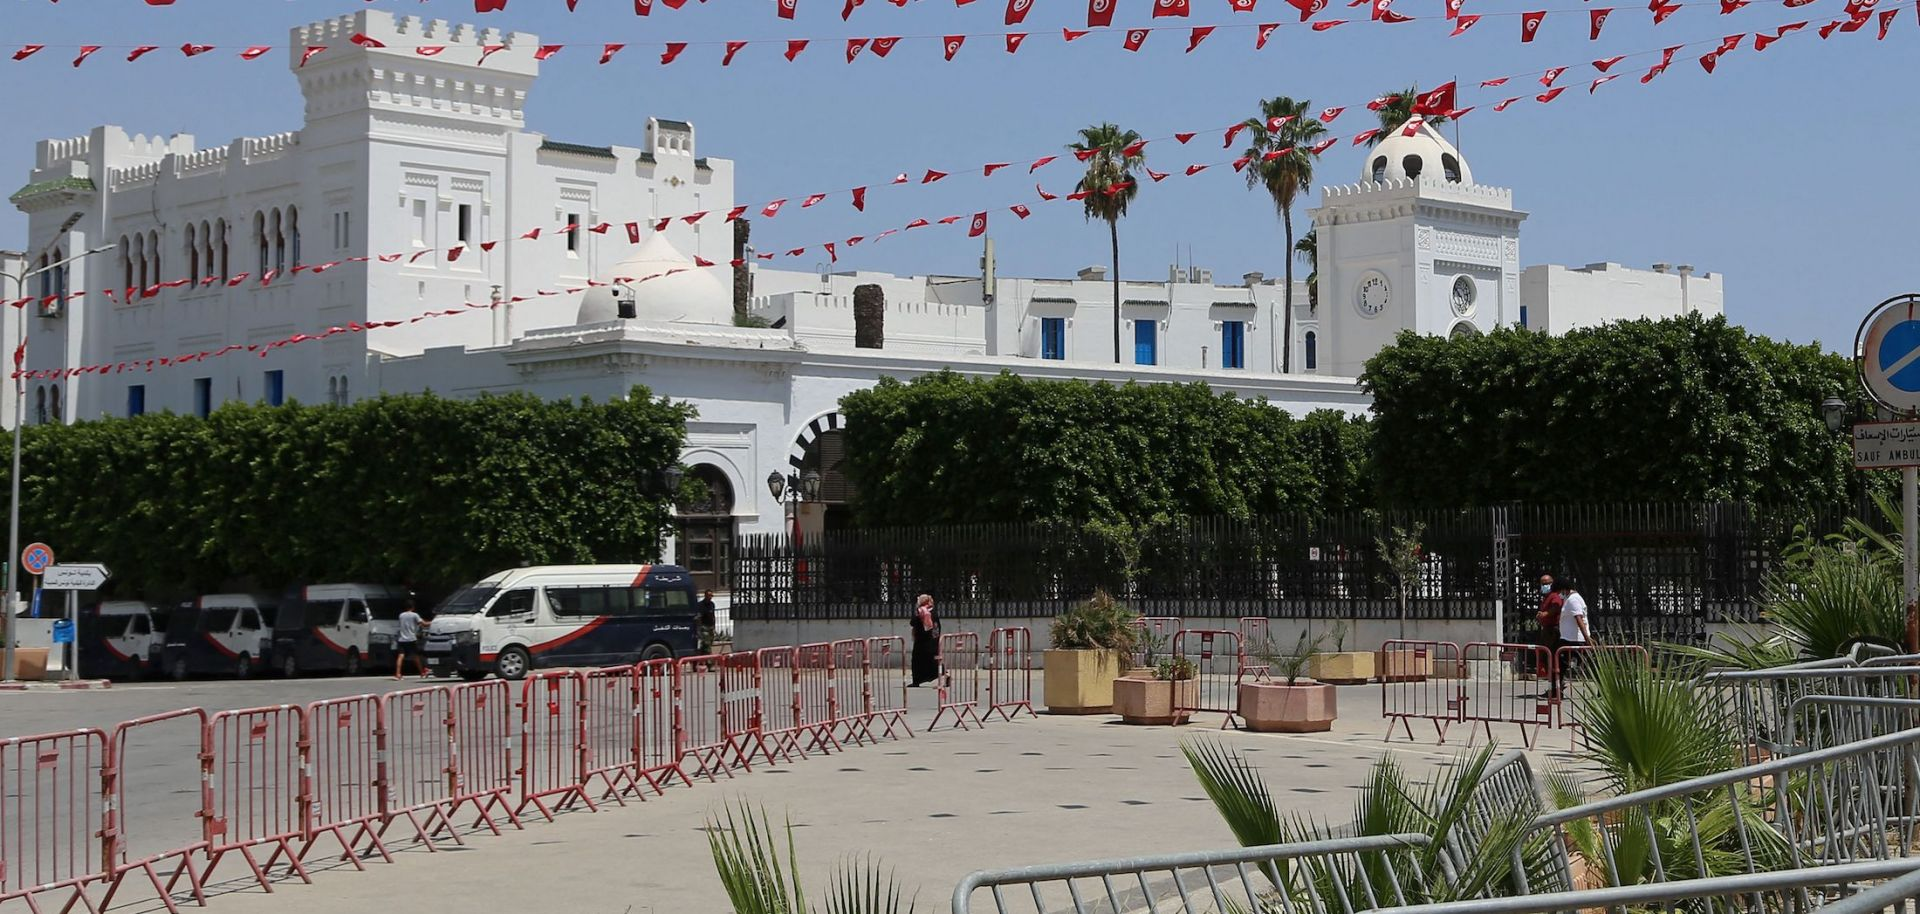 Tunisia's government headquarters in Tunis is seen barricaded on July 26, 2021.